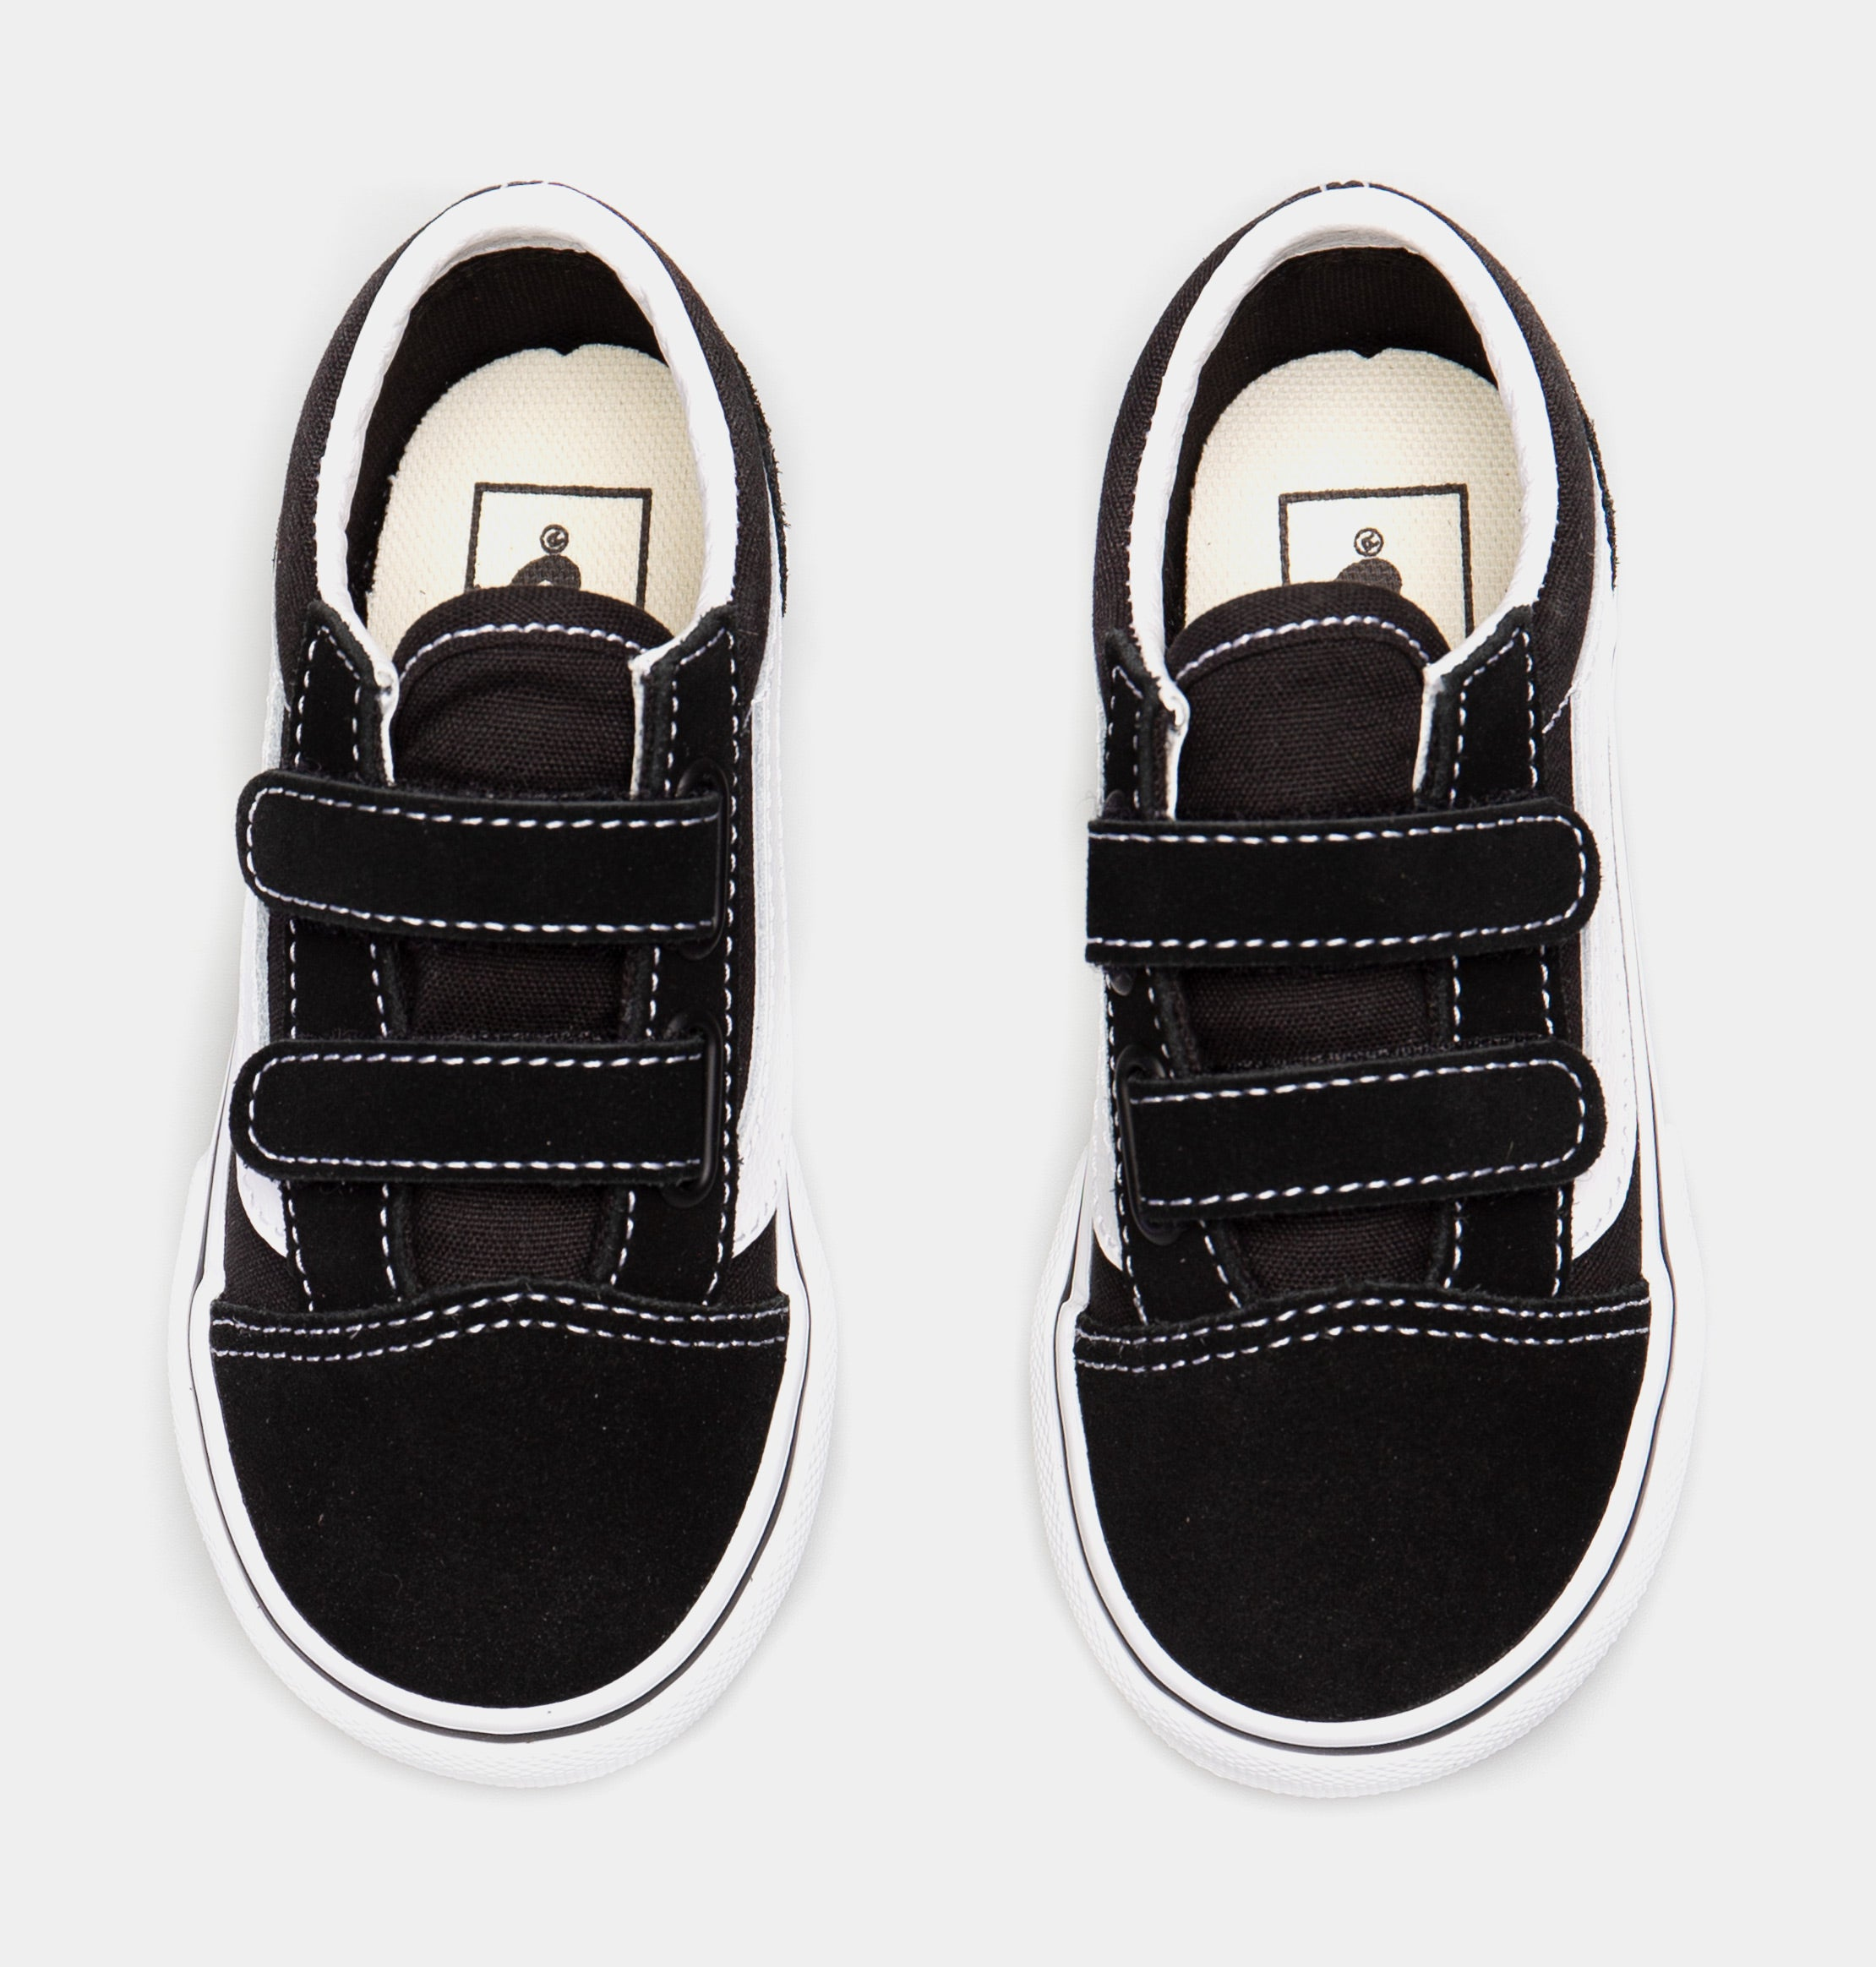 Old Skool V Low Infant Toddler Skateboarding Shoe (Black/White)